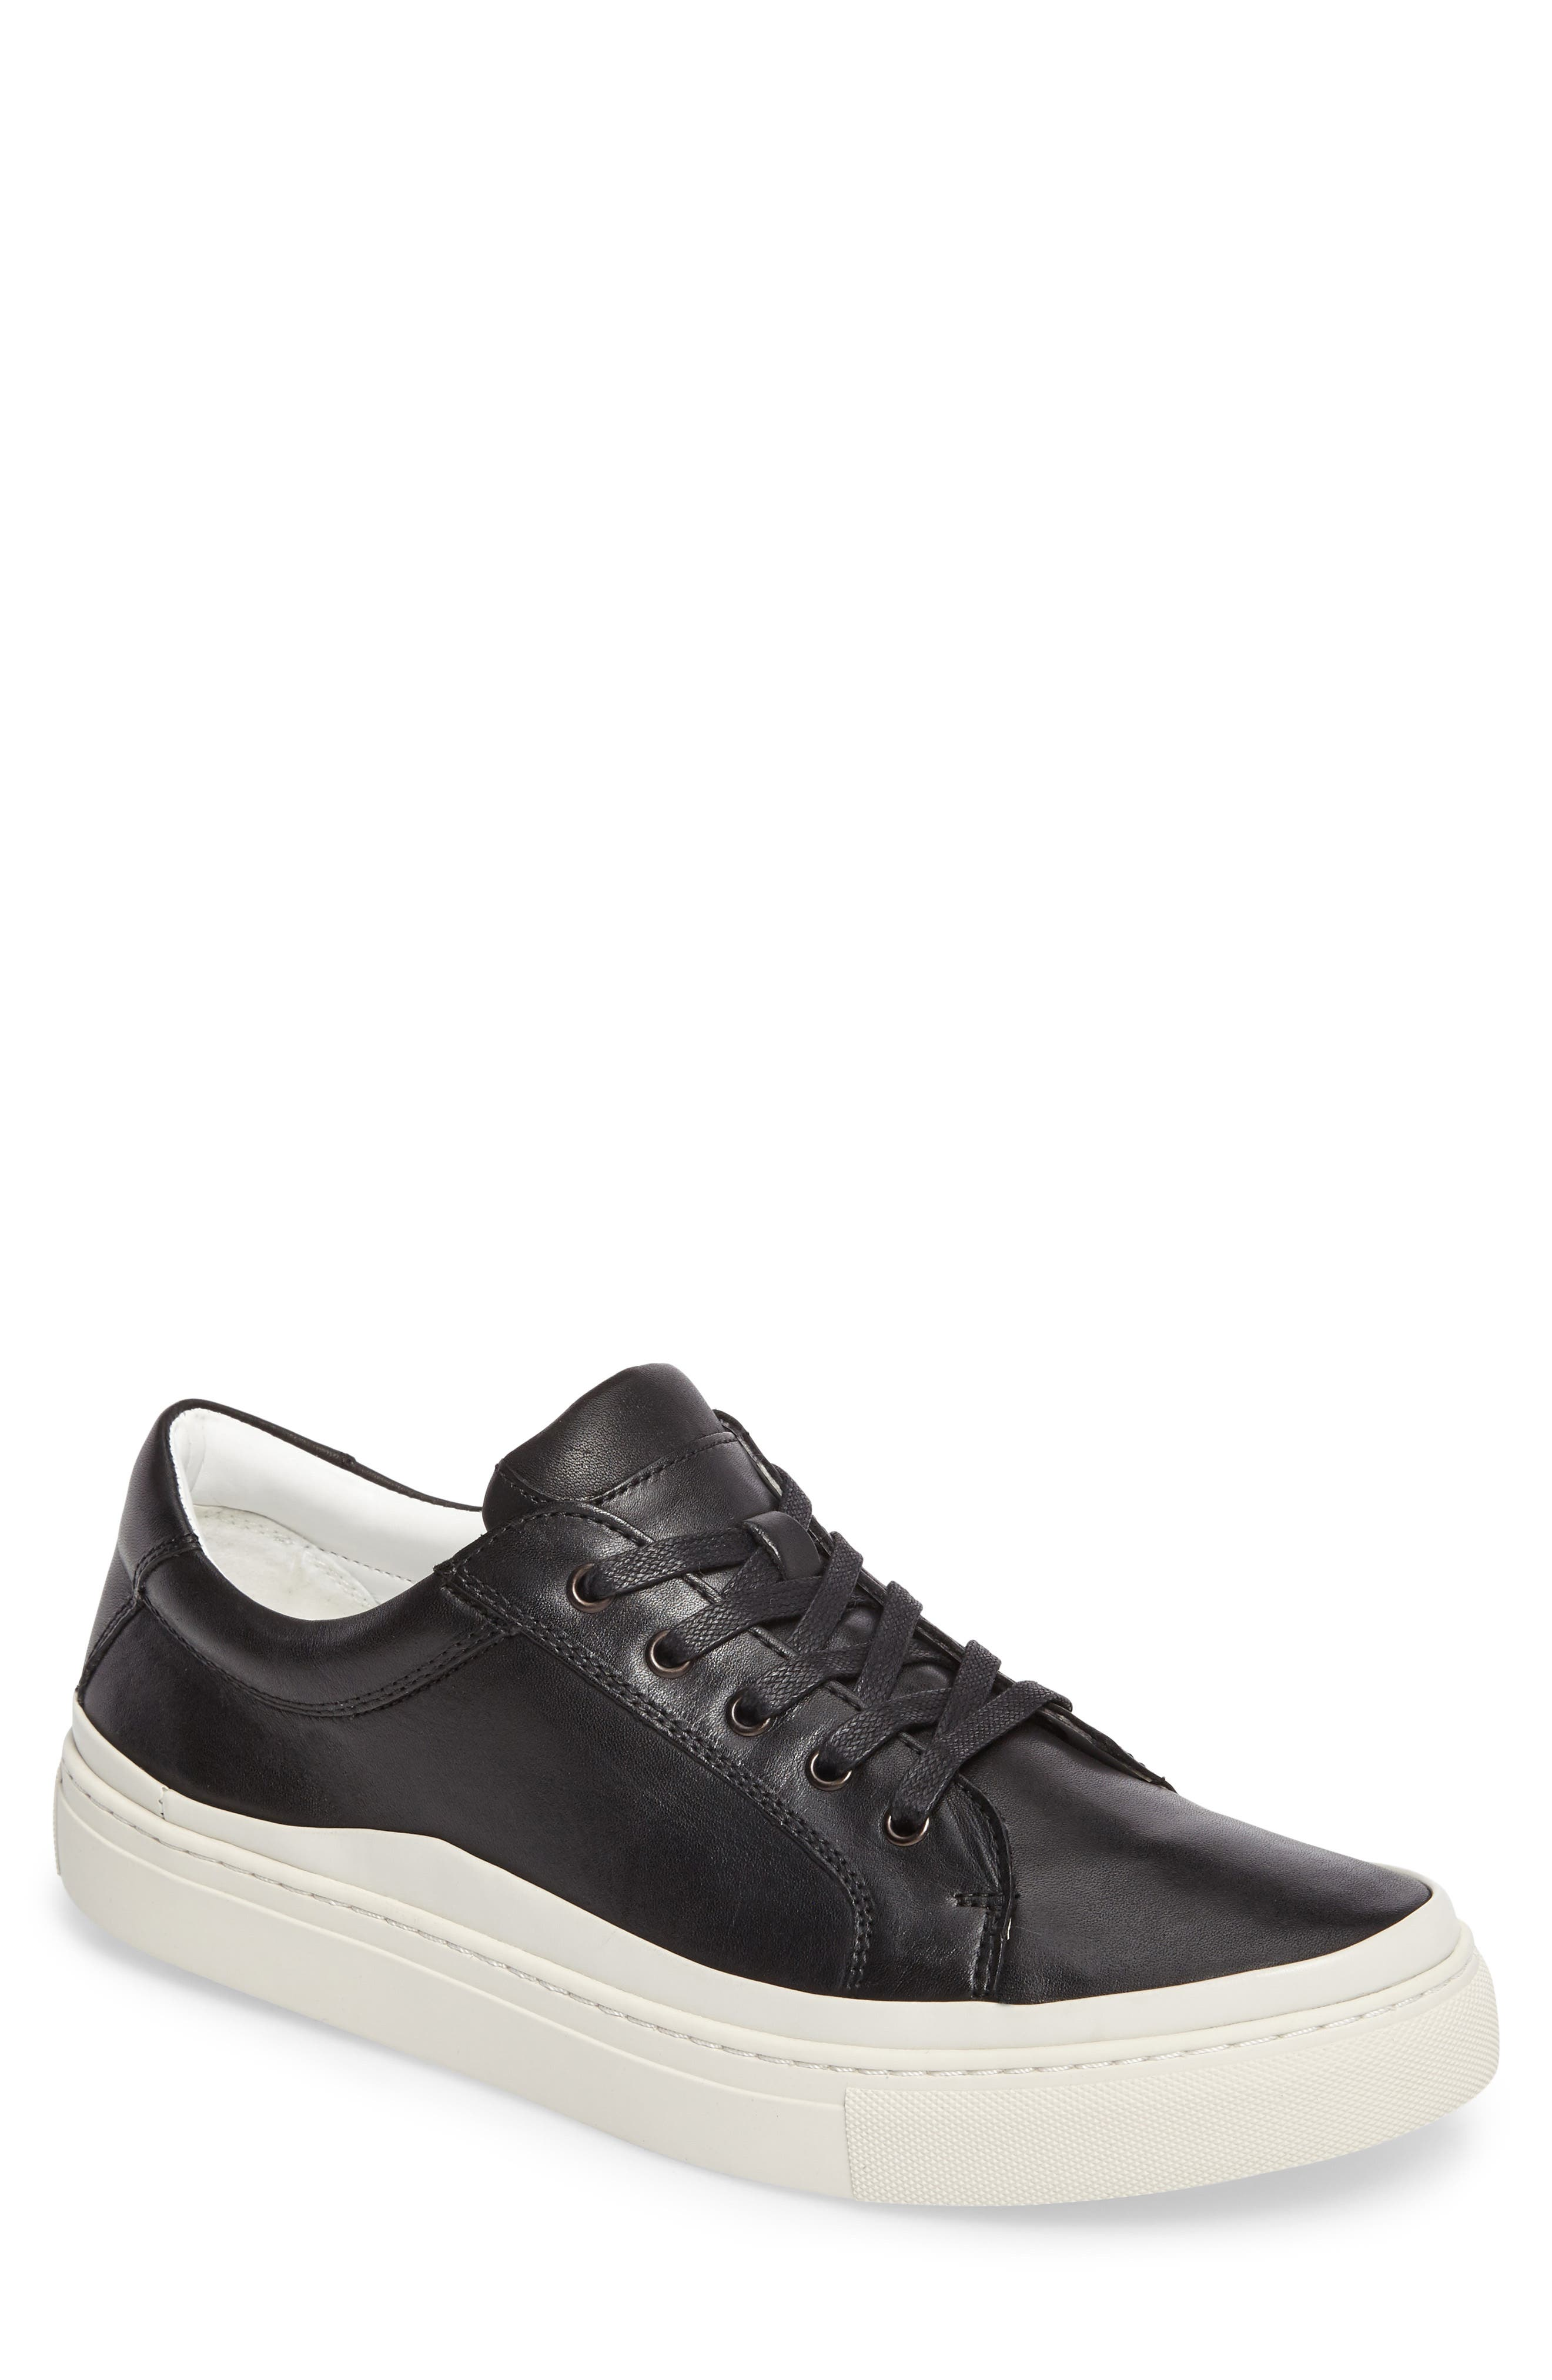 Kenneth Cole Reaction Sneaker,                         Main,                         color, 016